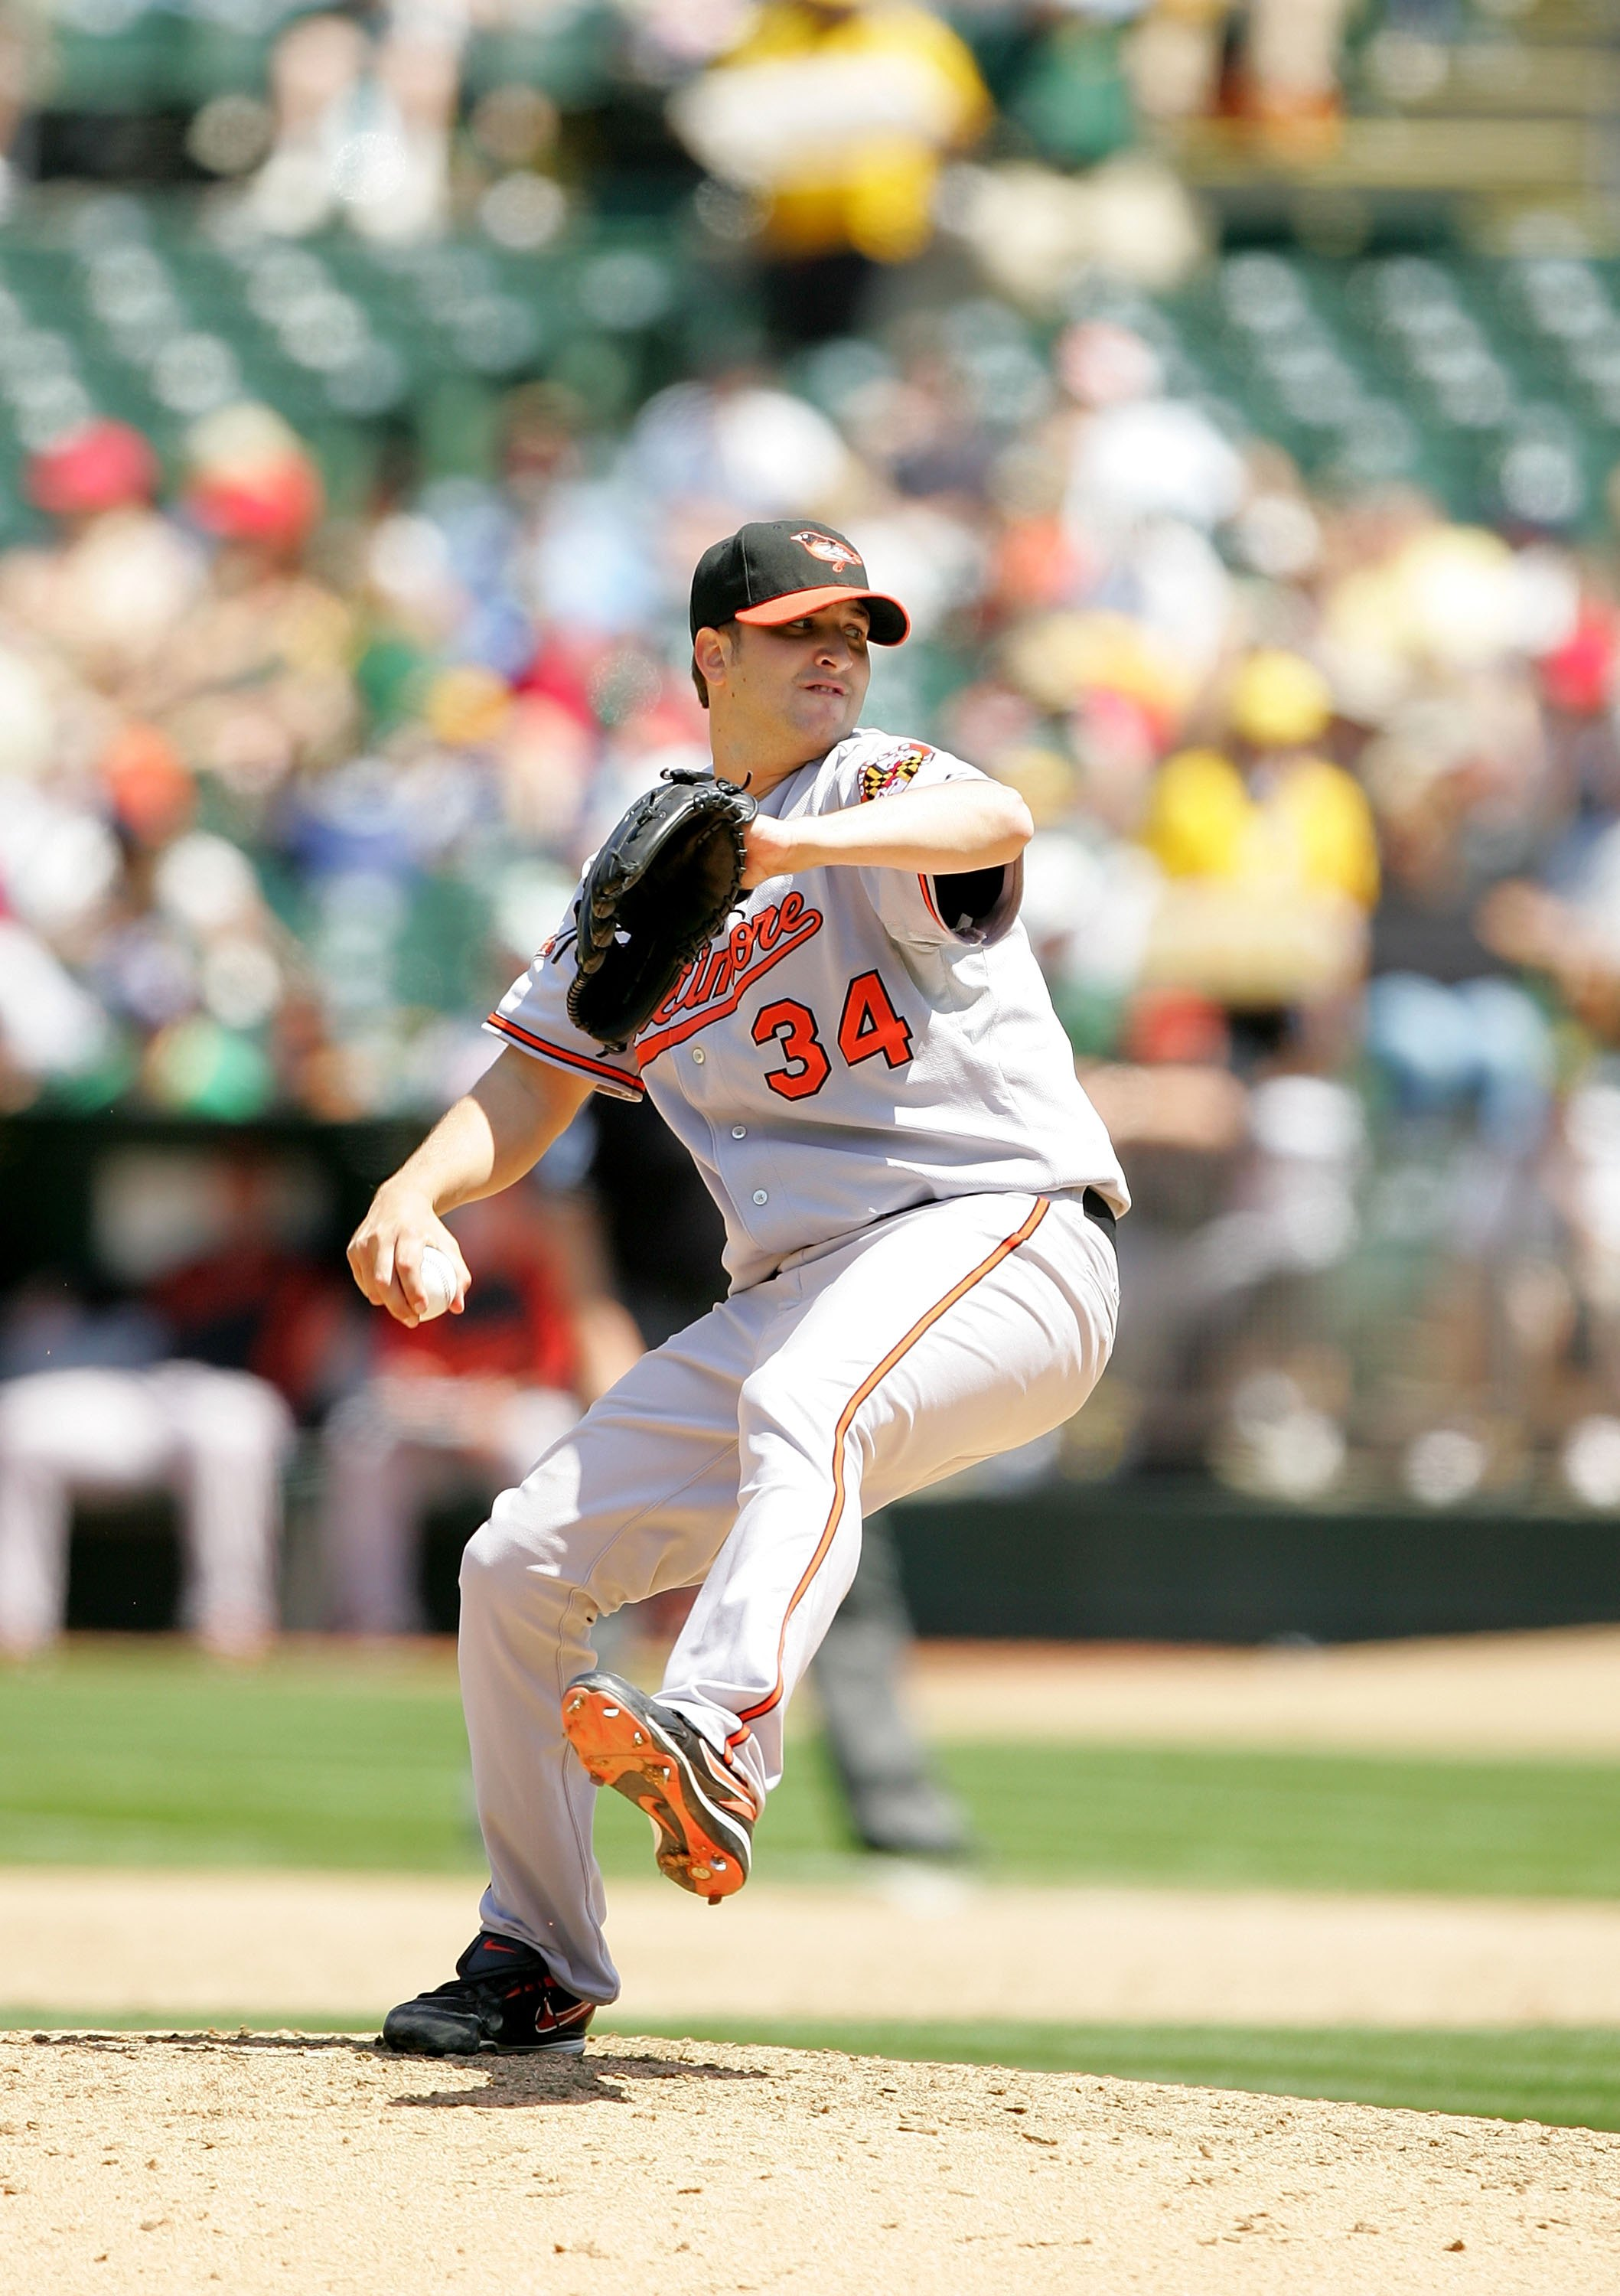 Albers is a 27 year old free agent reliever